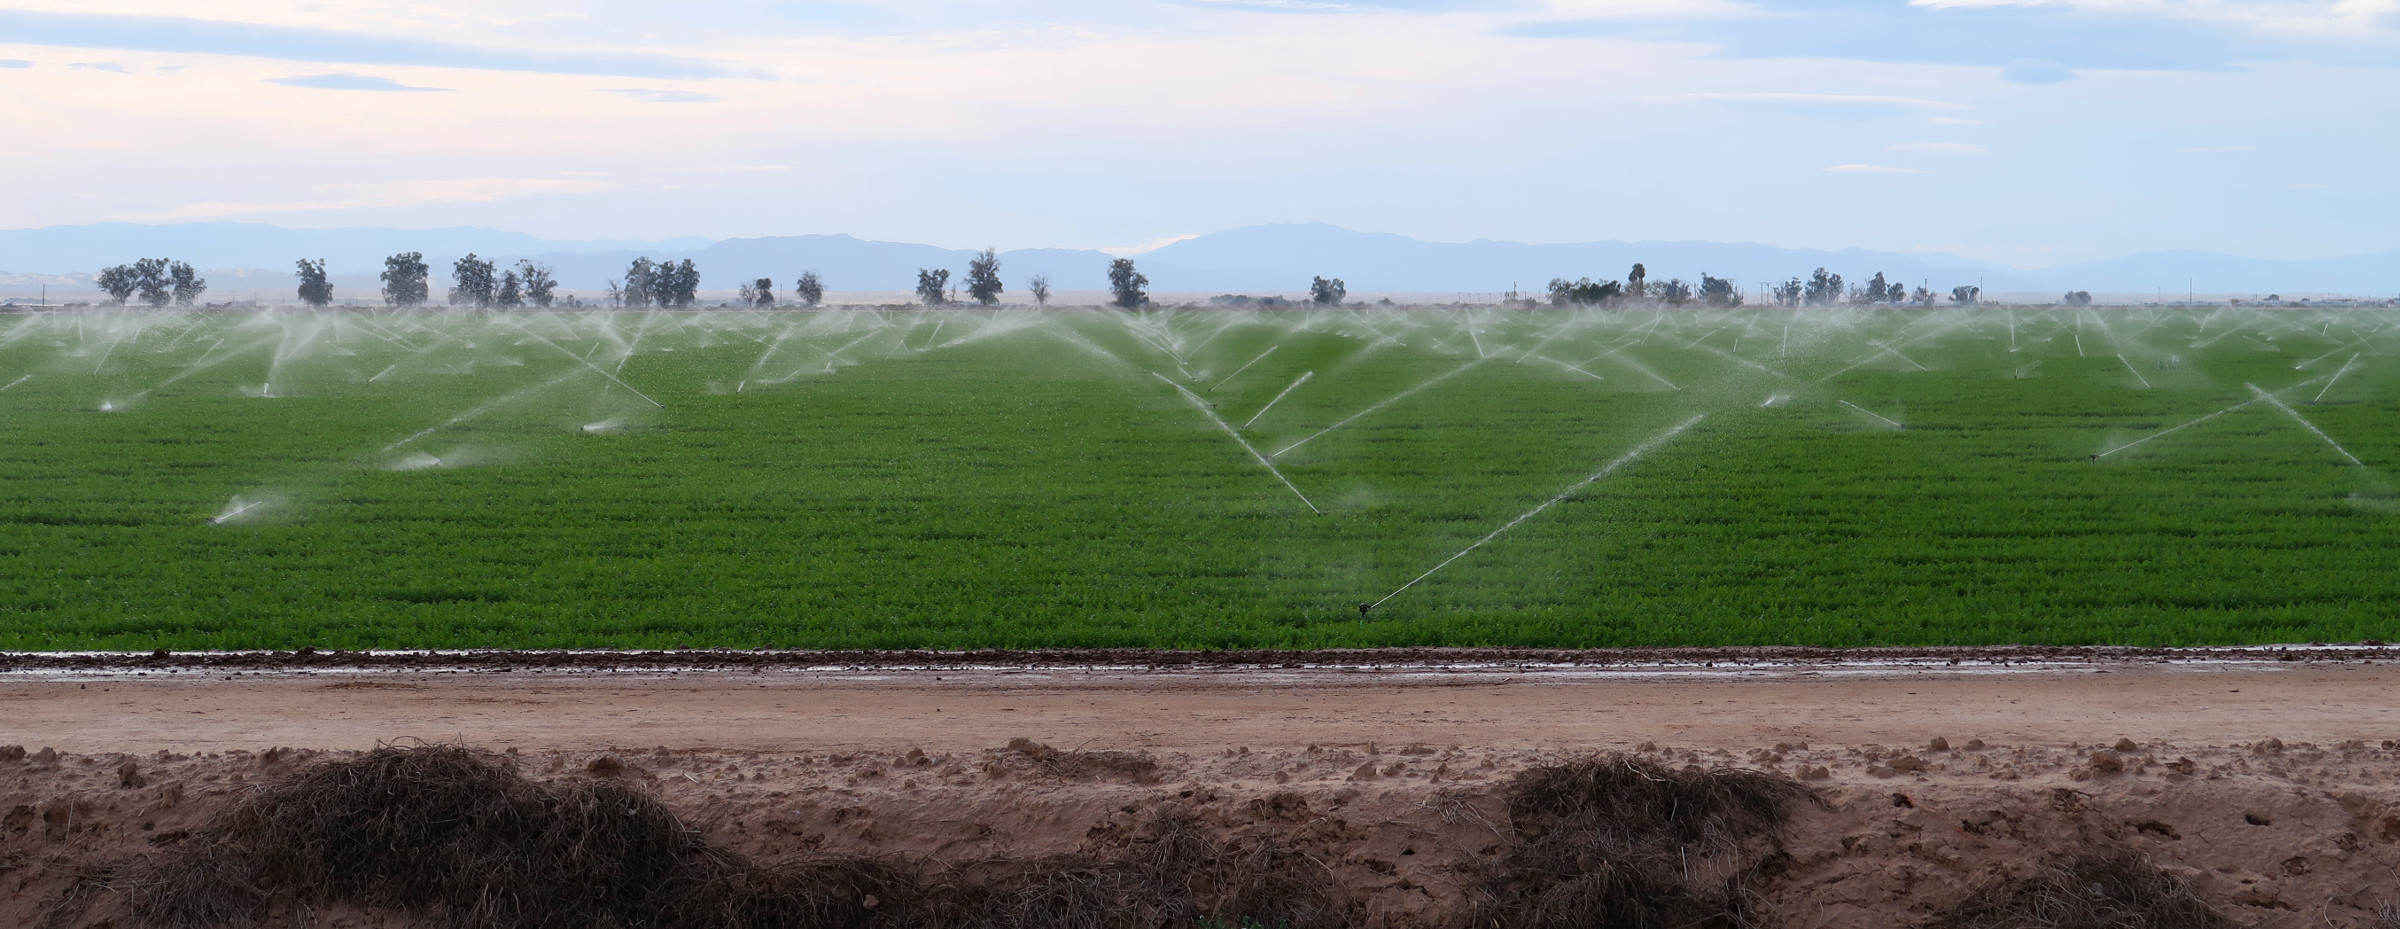 Irrigated field in southern California, in the desert near the Salton Sea